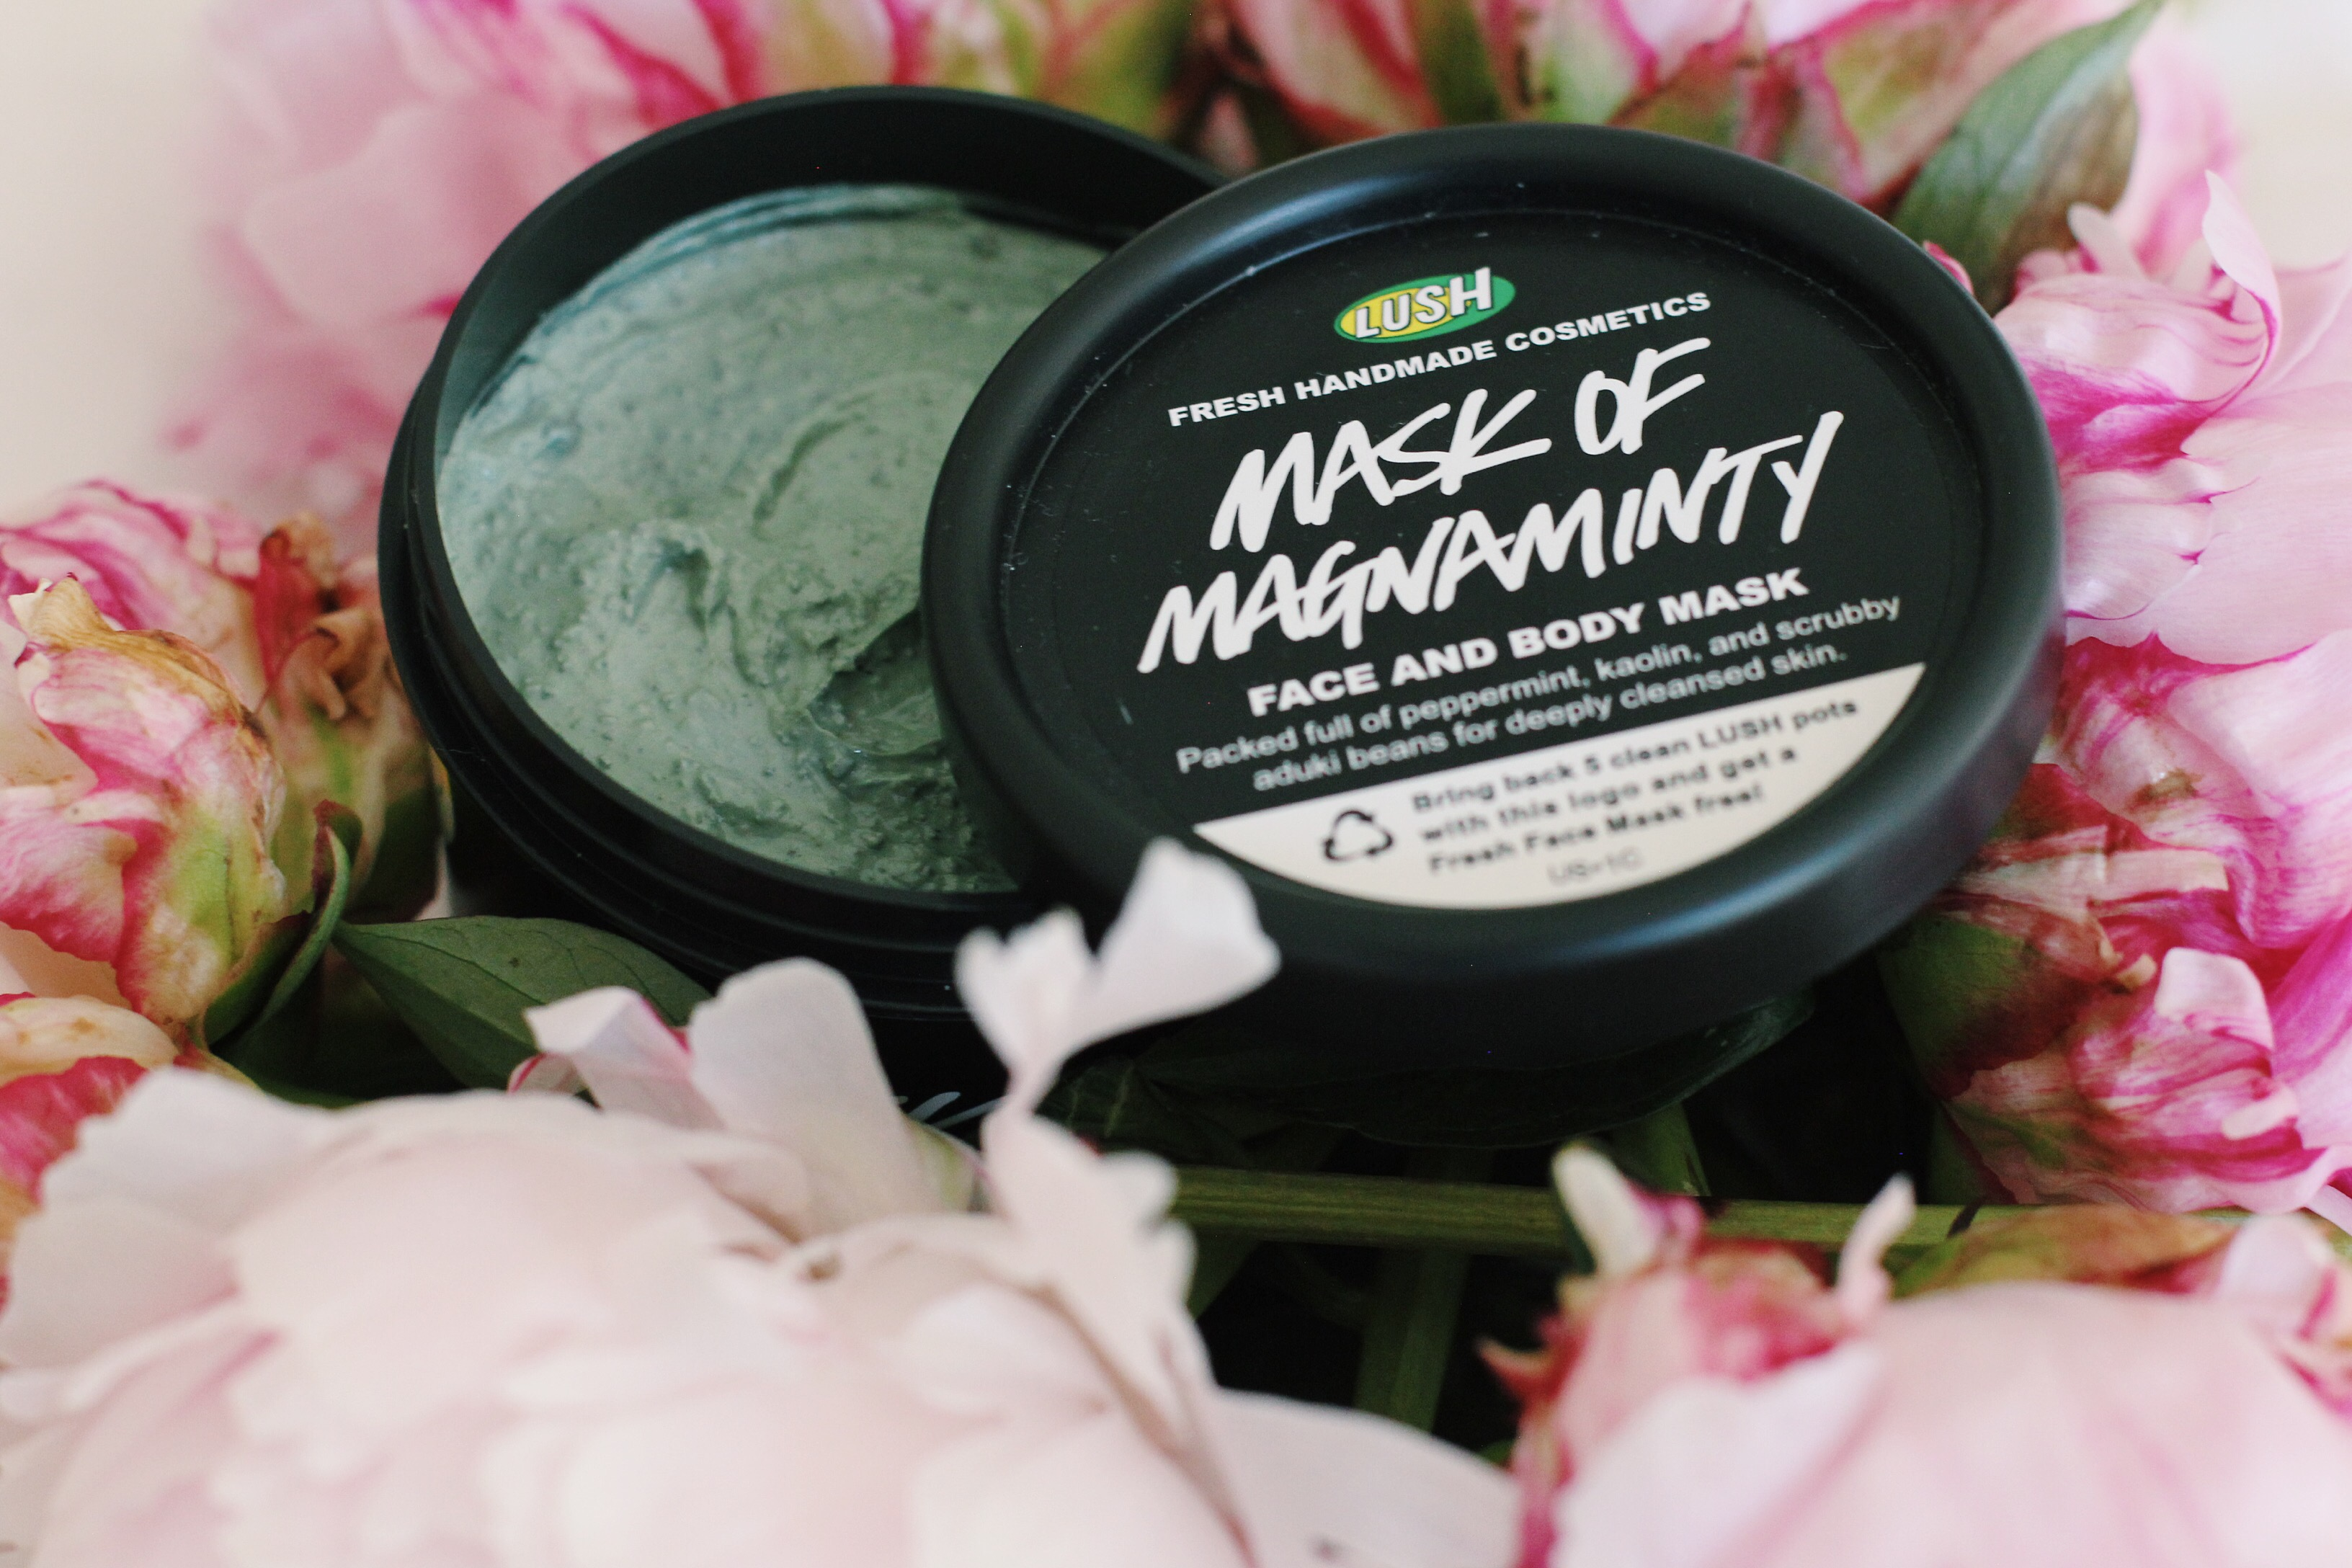 It tingles on your skin (in a good way!)